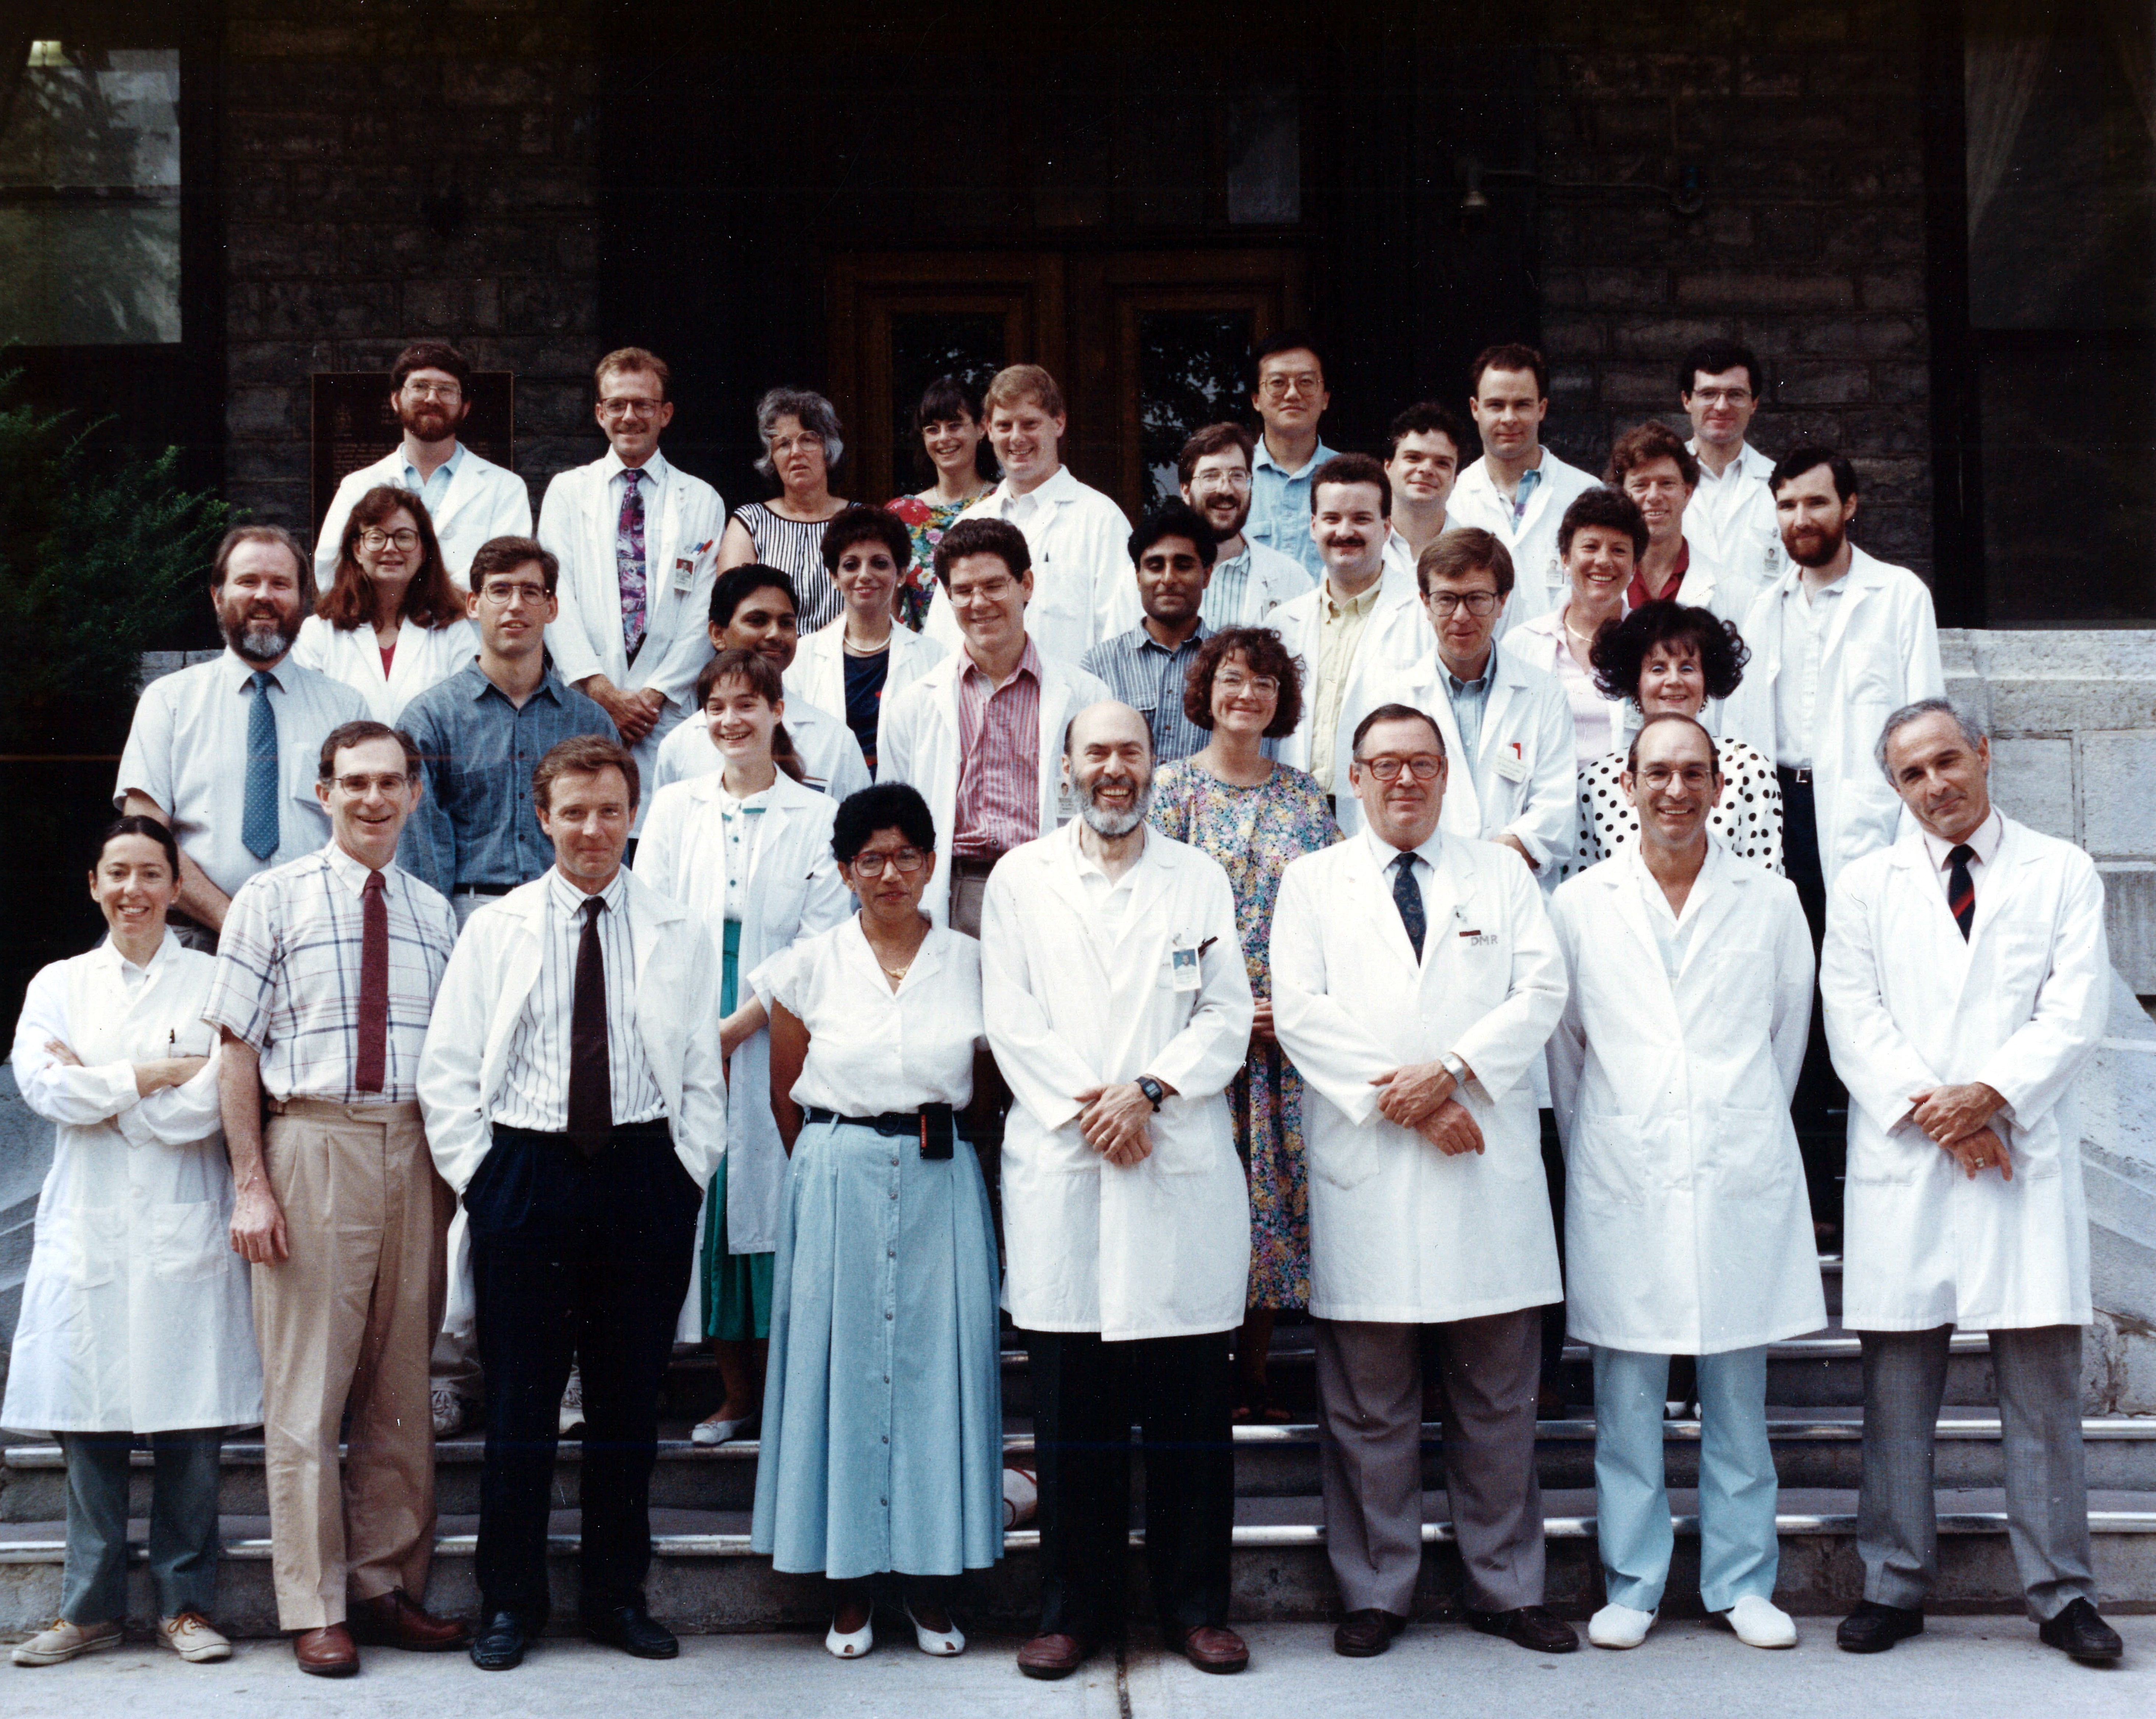 1991 Faculty Group Photo